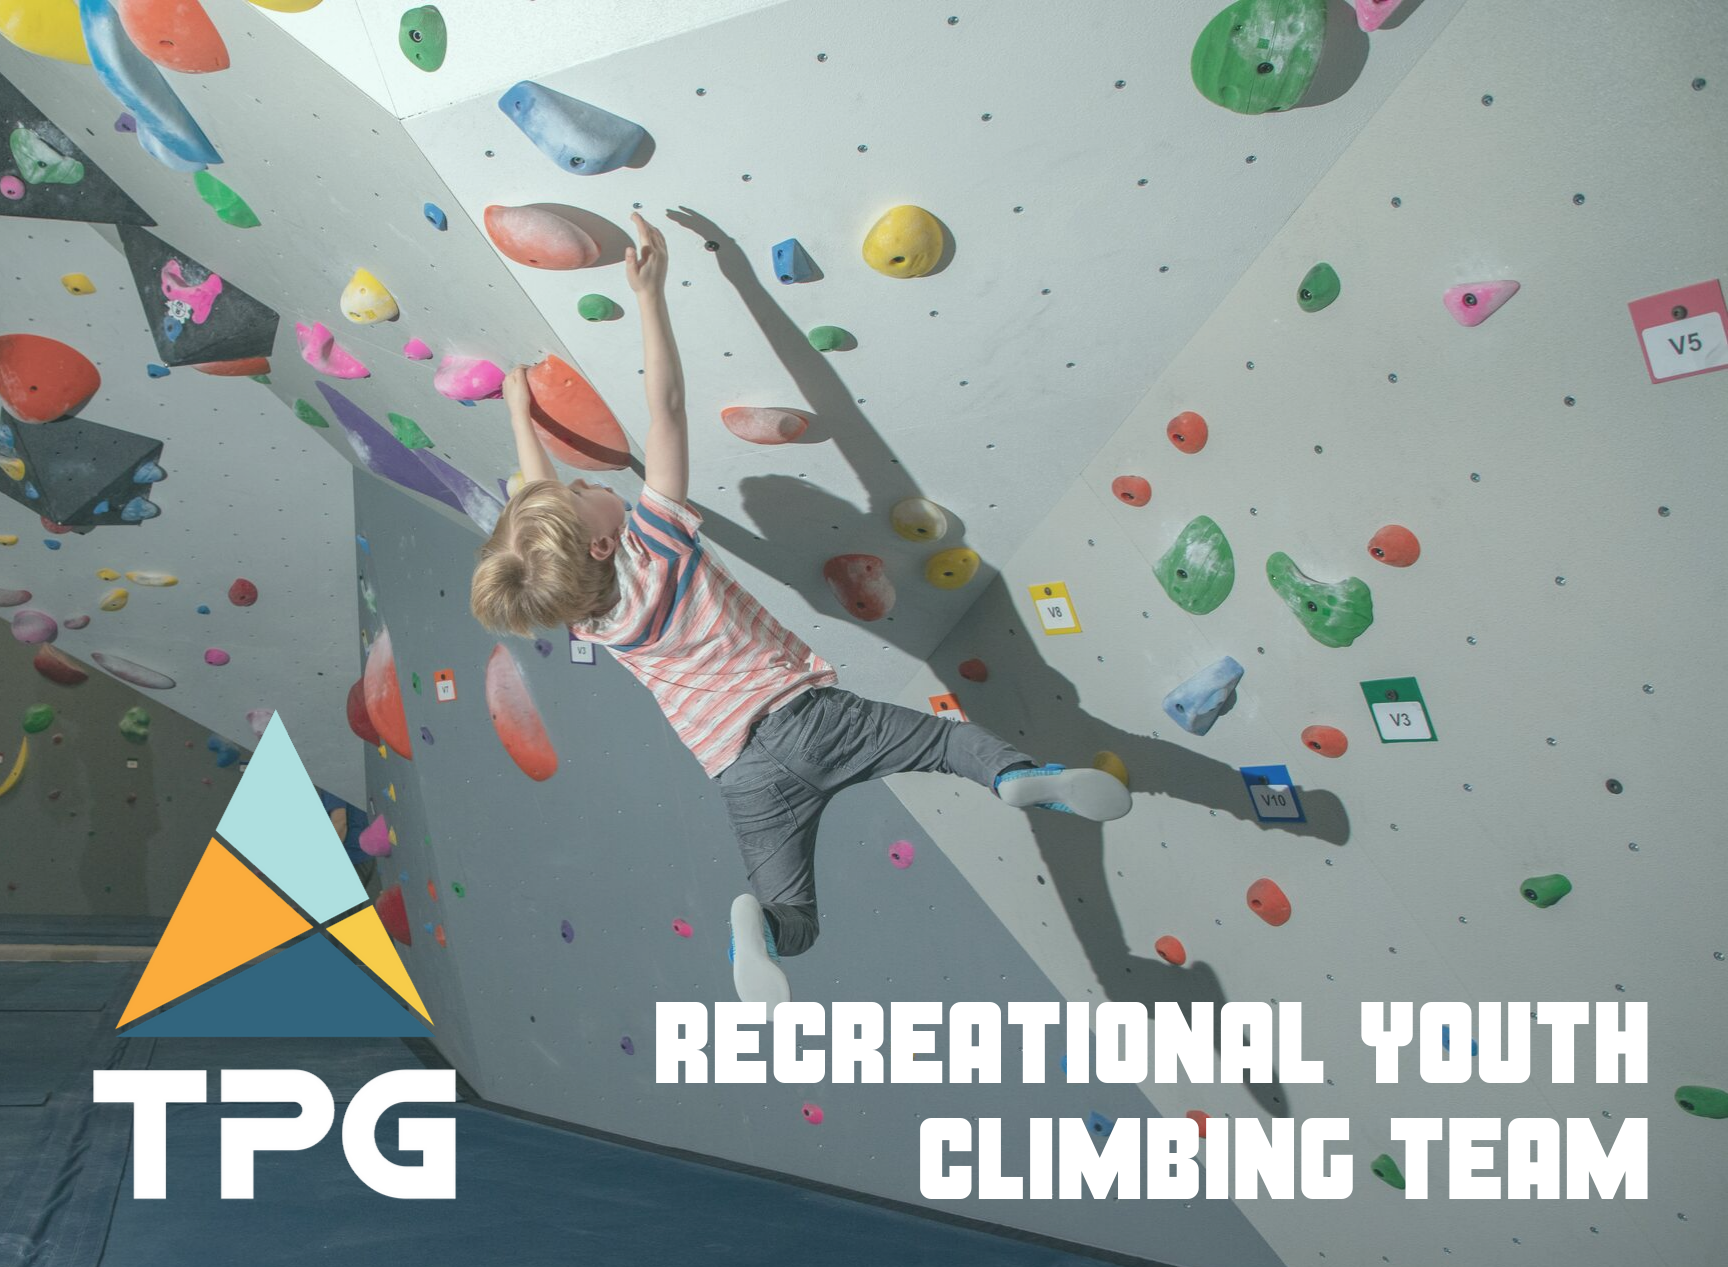 Recreational Youth Climbing Team